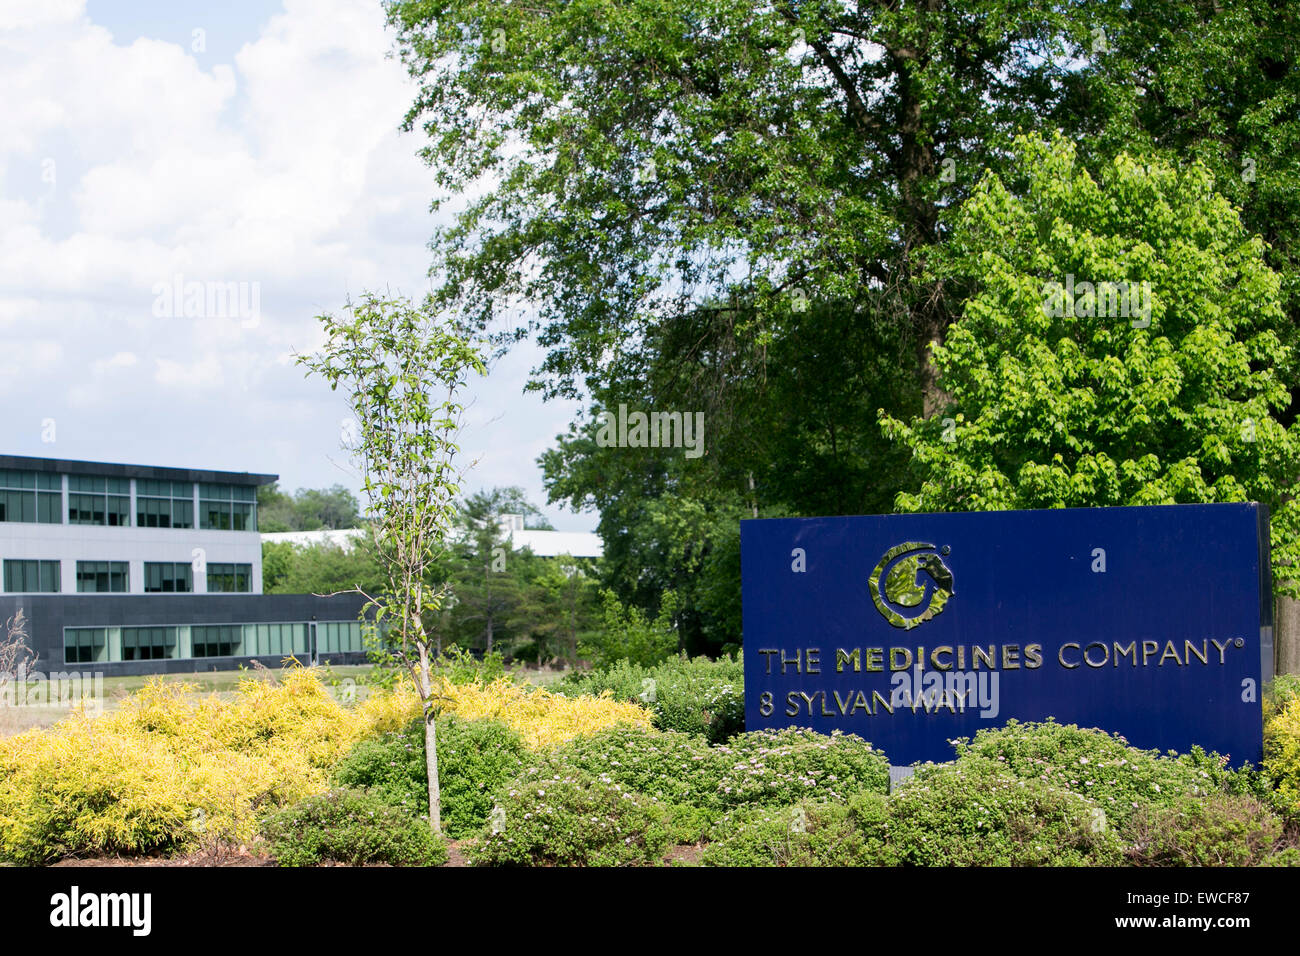 A logo sign outside of the headquarters of The Medicines Company in Parsippany, New Jersey. - Stock Image